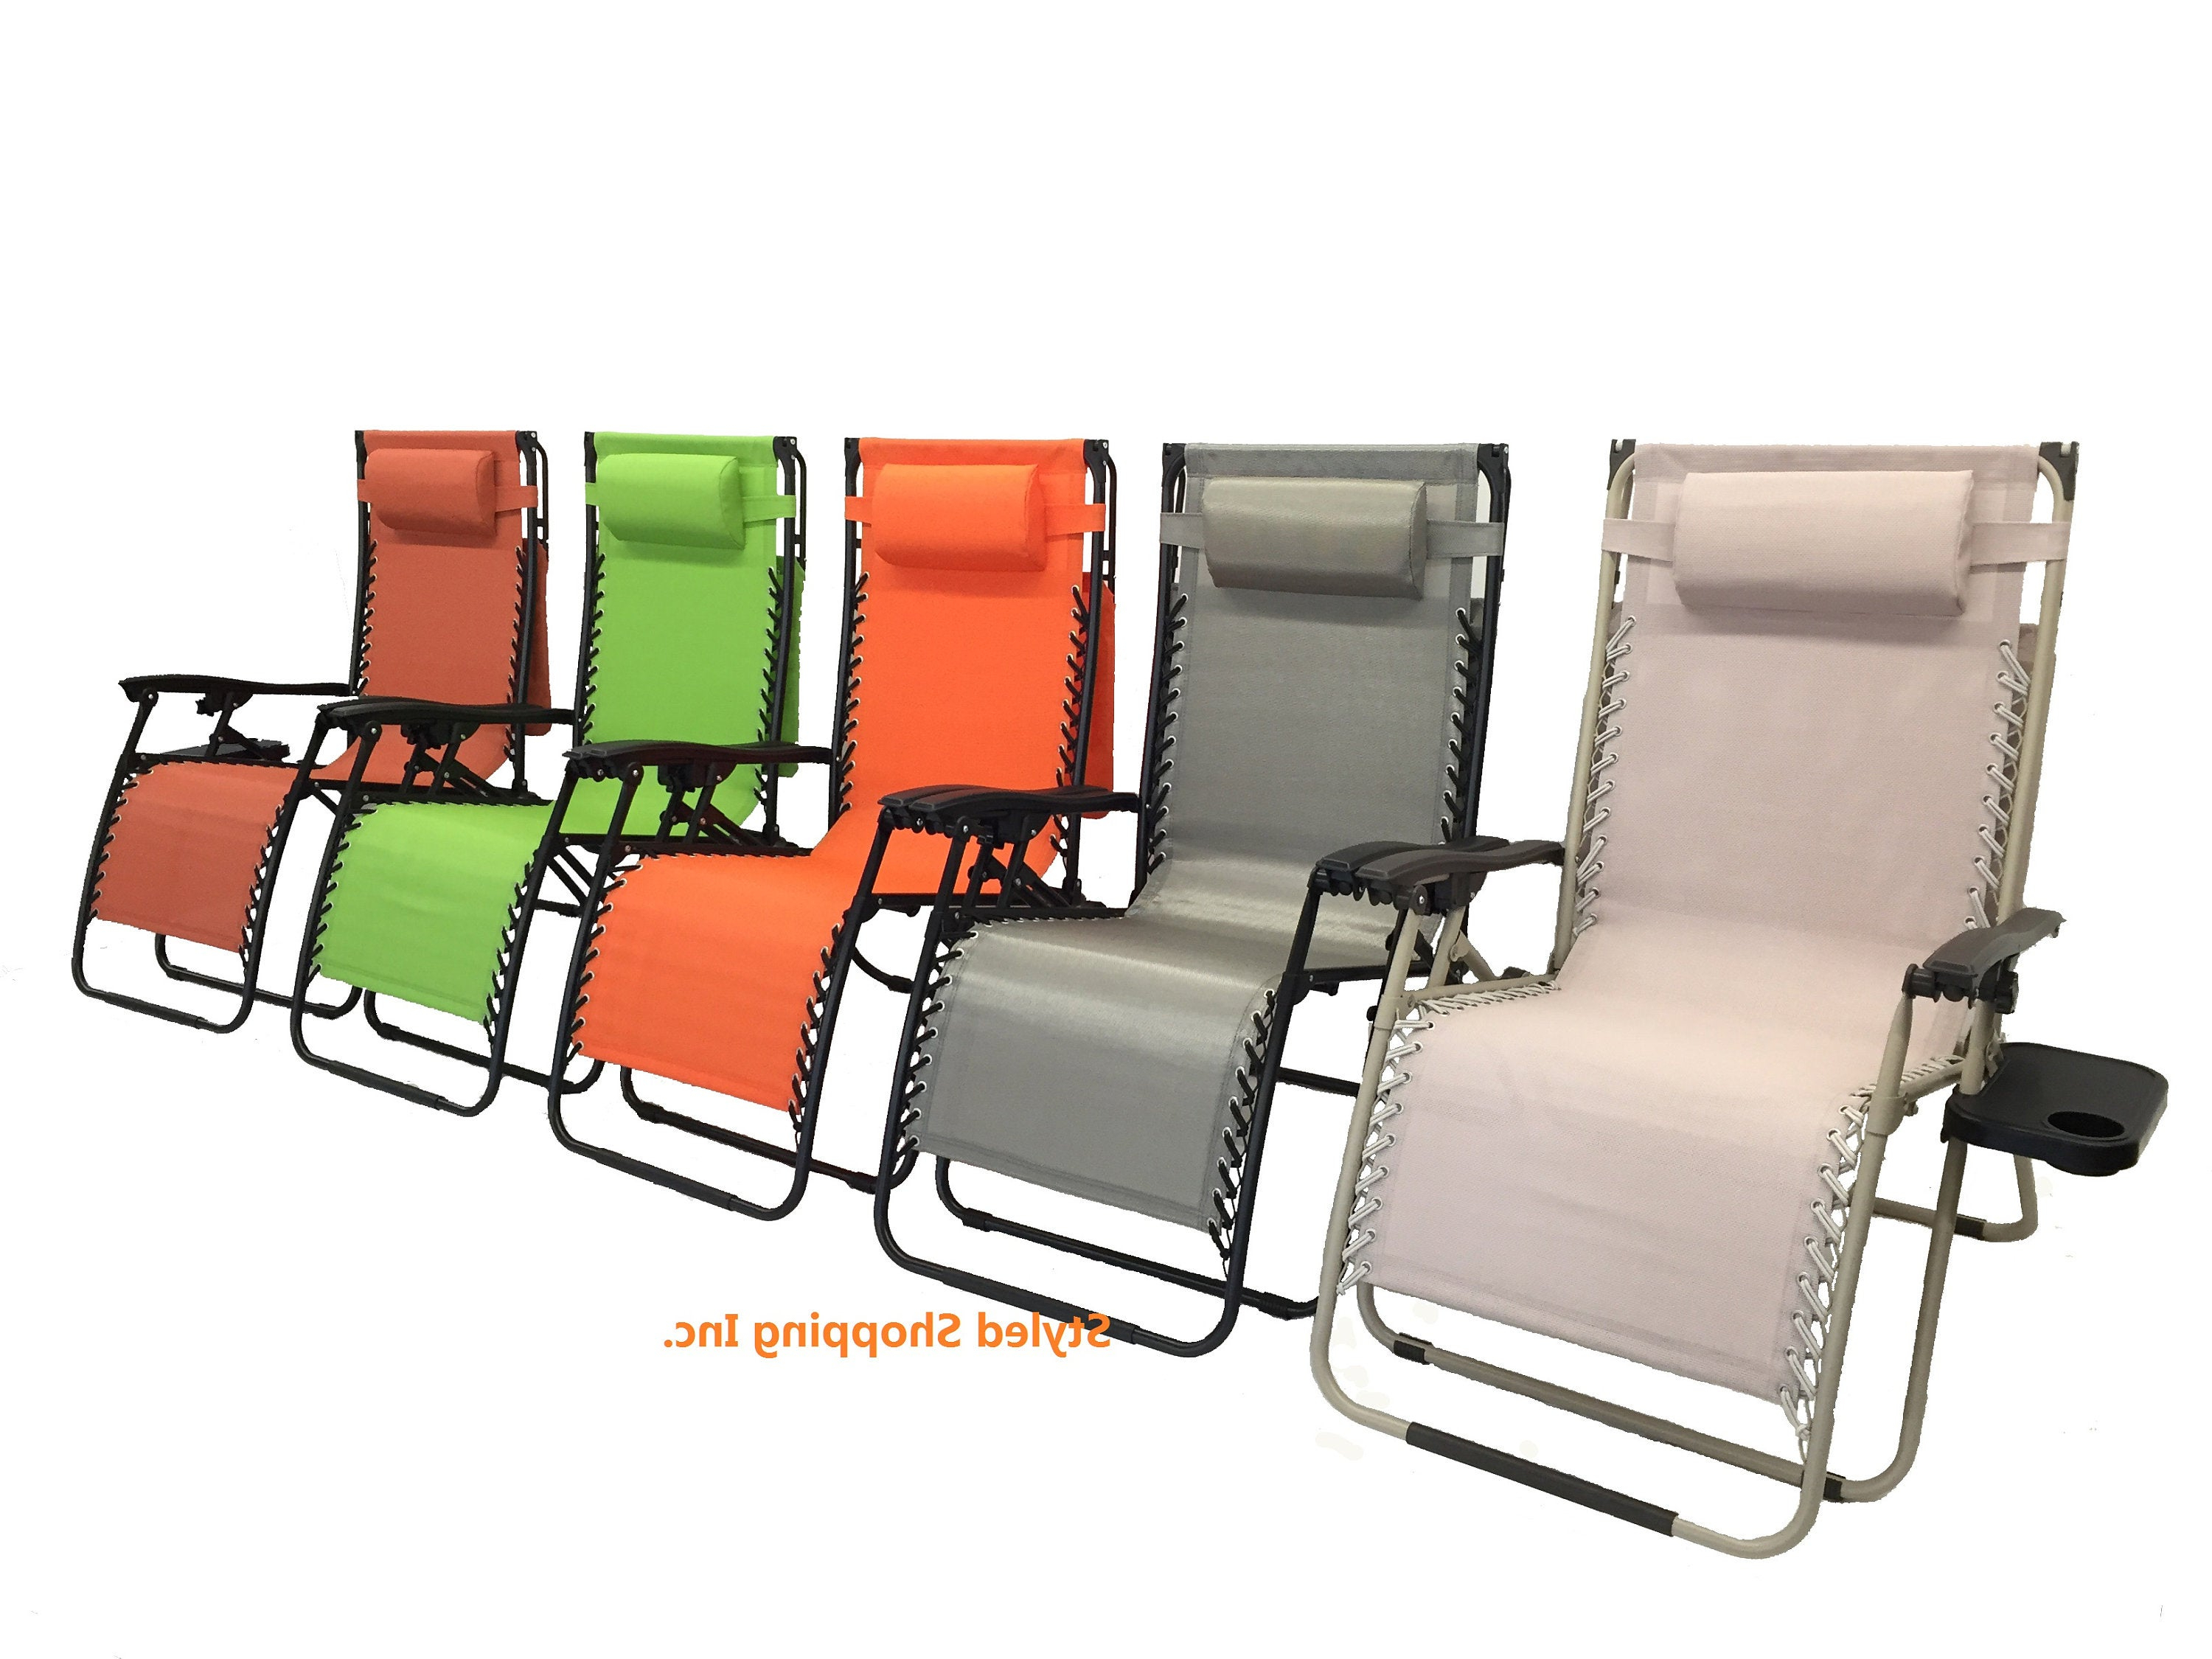 2020 Deluxe Padded Chairs With Canopy And Tray Pertaining To Deluxe Extra Large Oversized Zero Gravity Chair With Canopy And Tray (View 3 of 25)